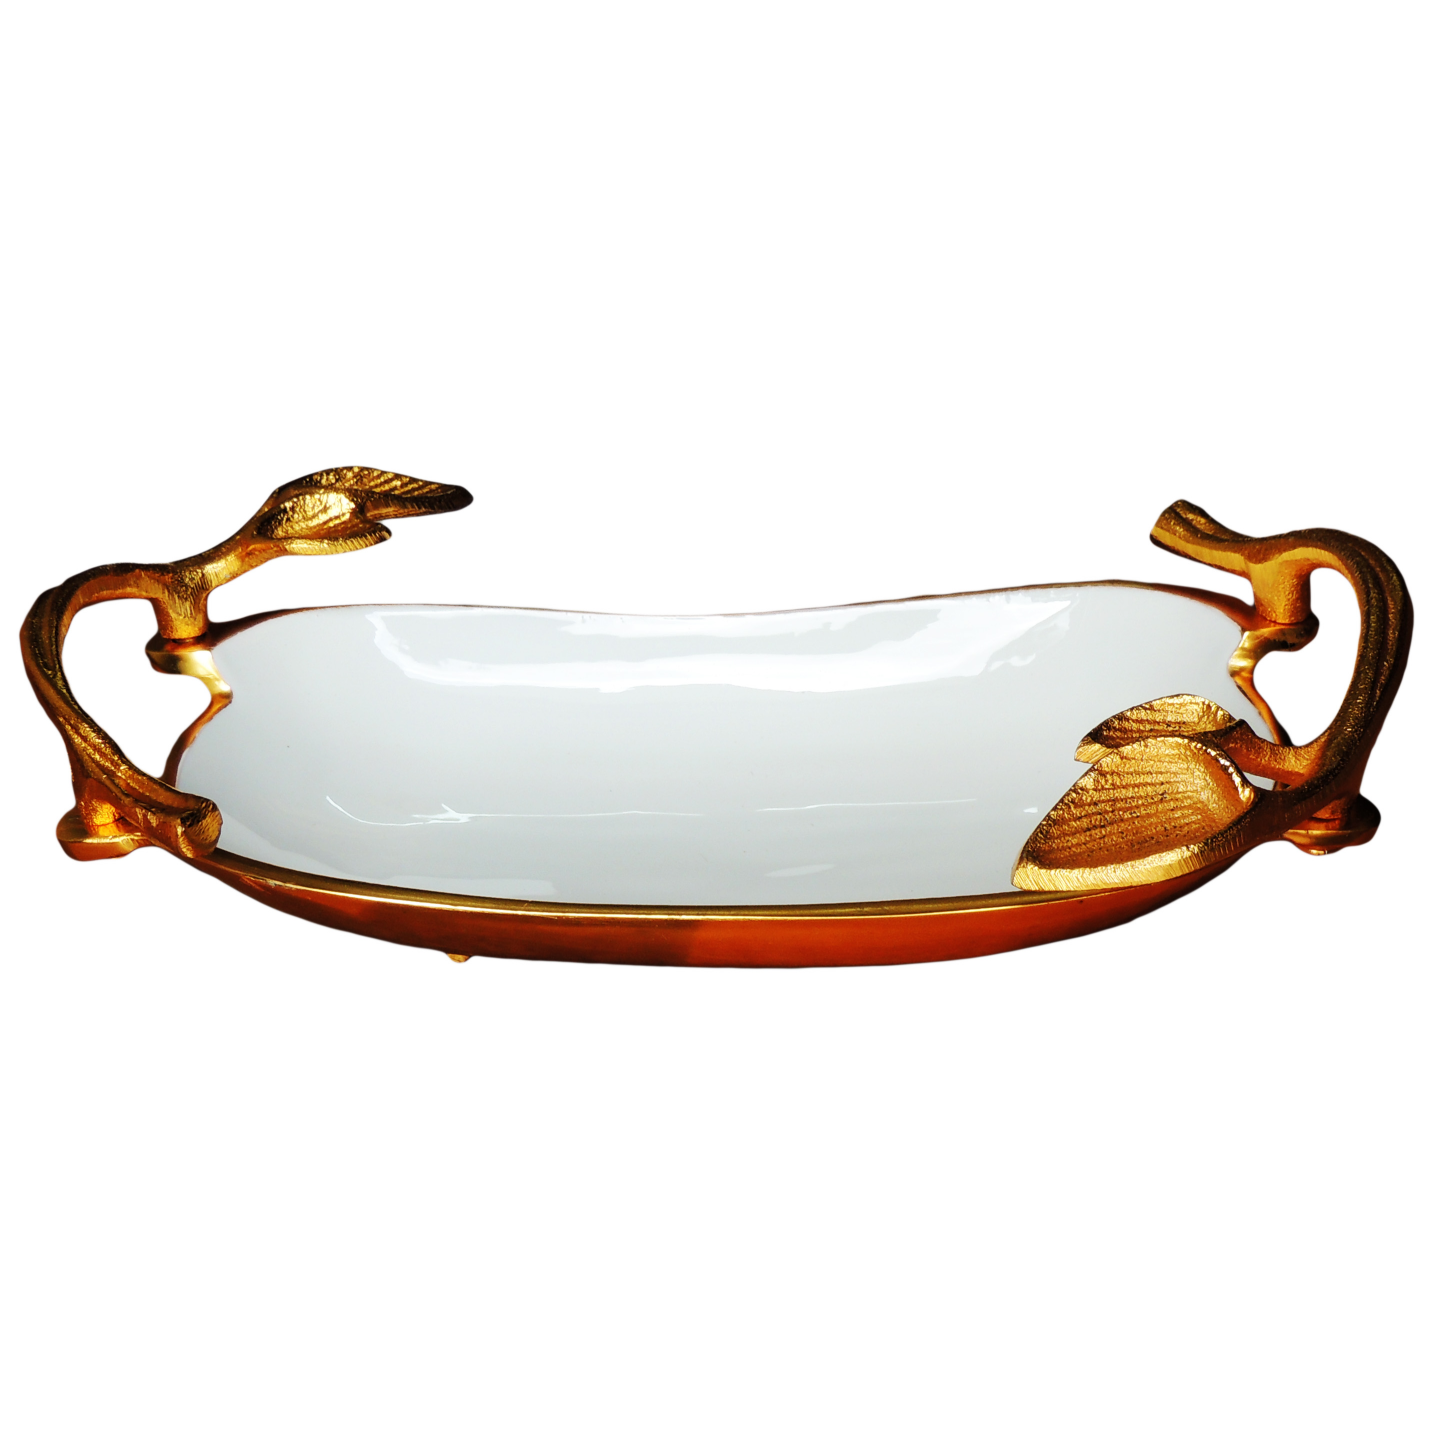 Aluminium Metal Tray Serving Platter with Gold and White Finish- 13*8 Inch  (A3179/13)